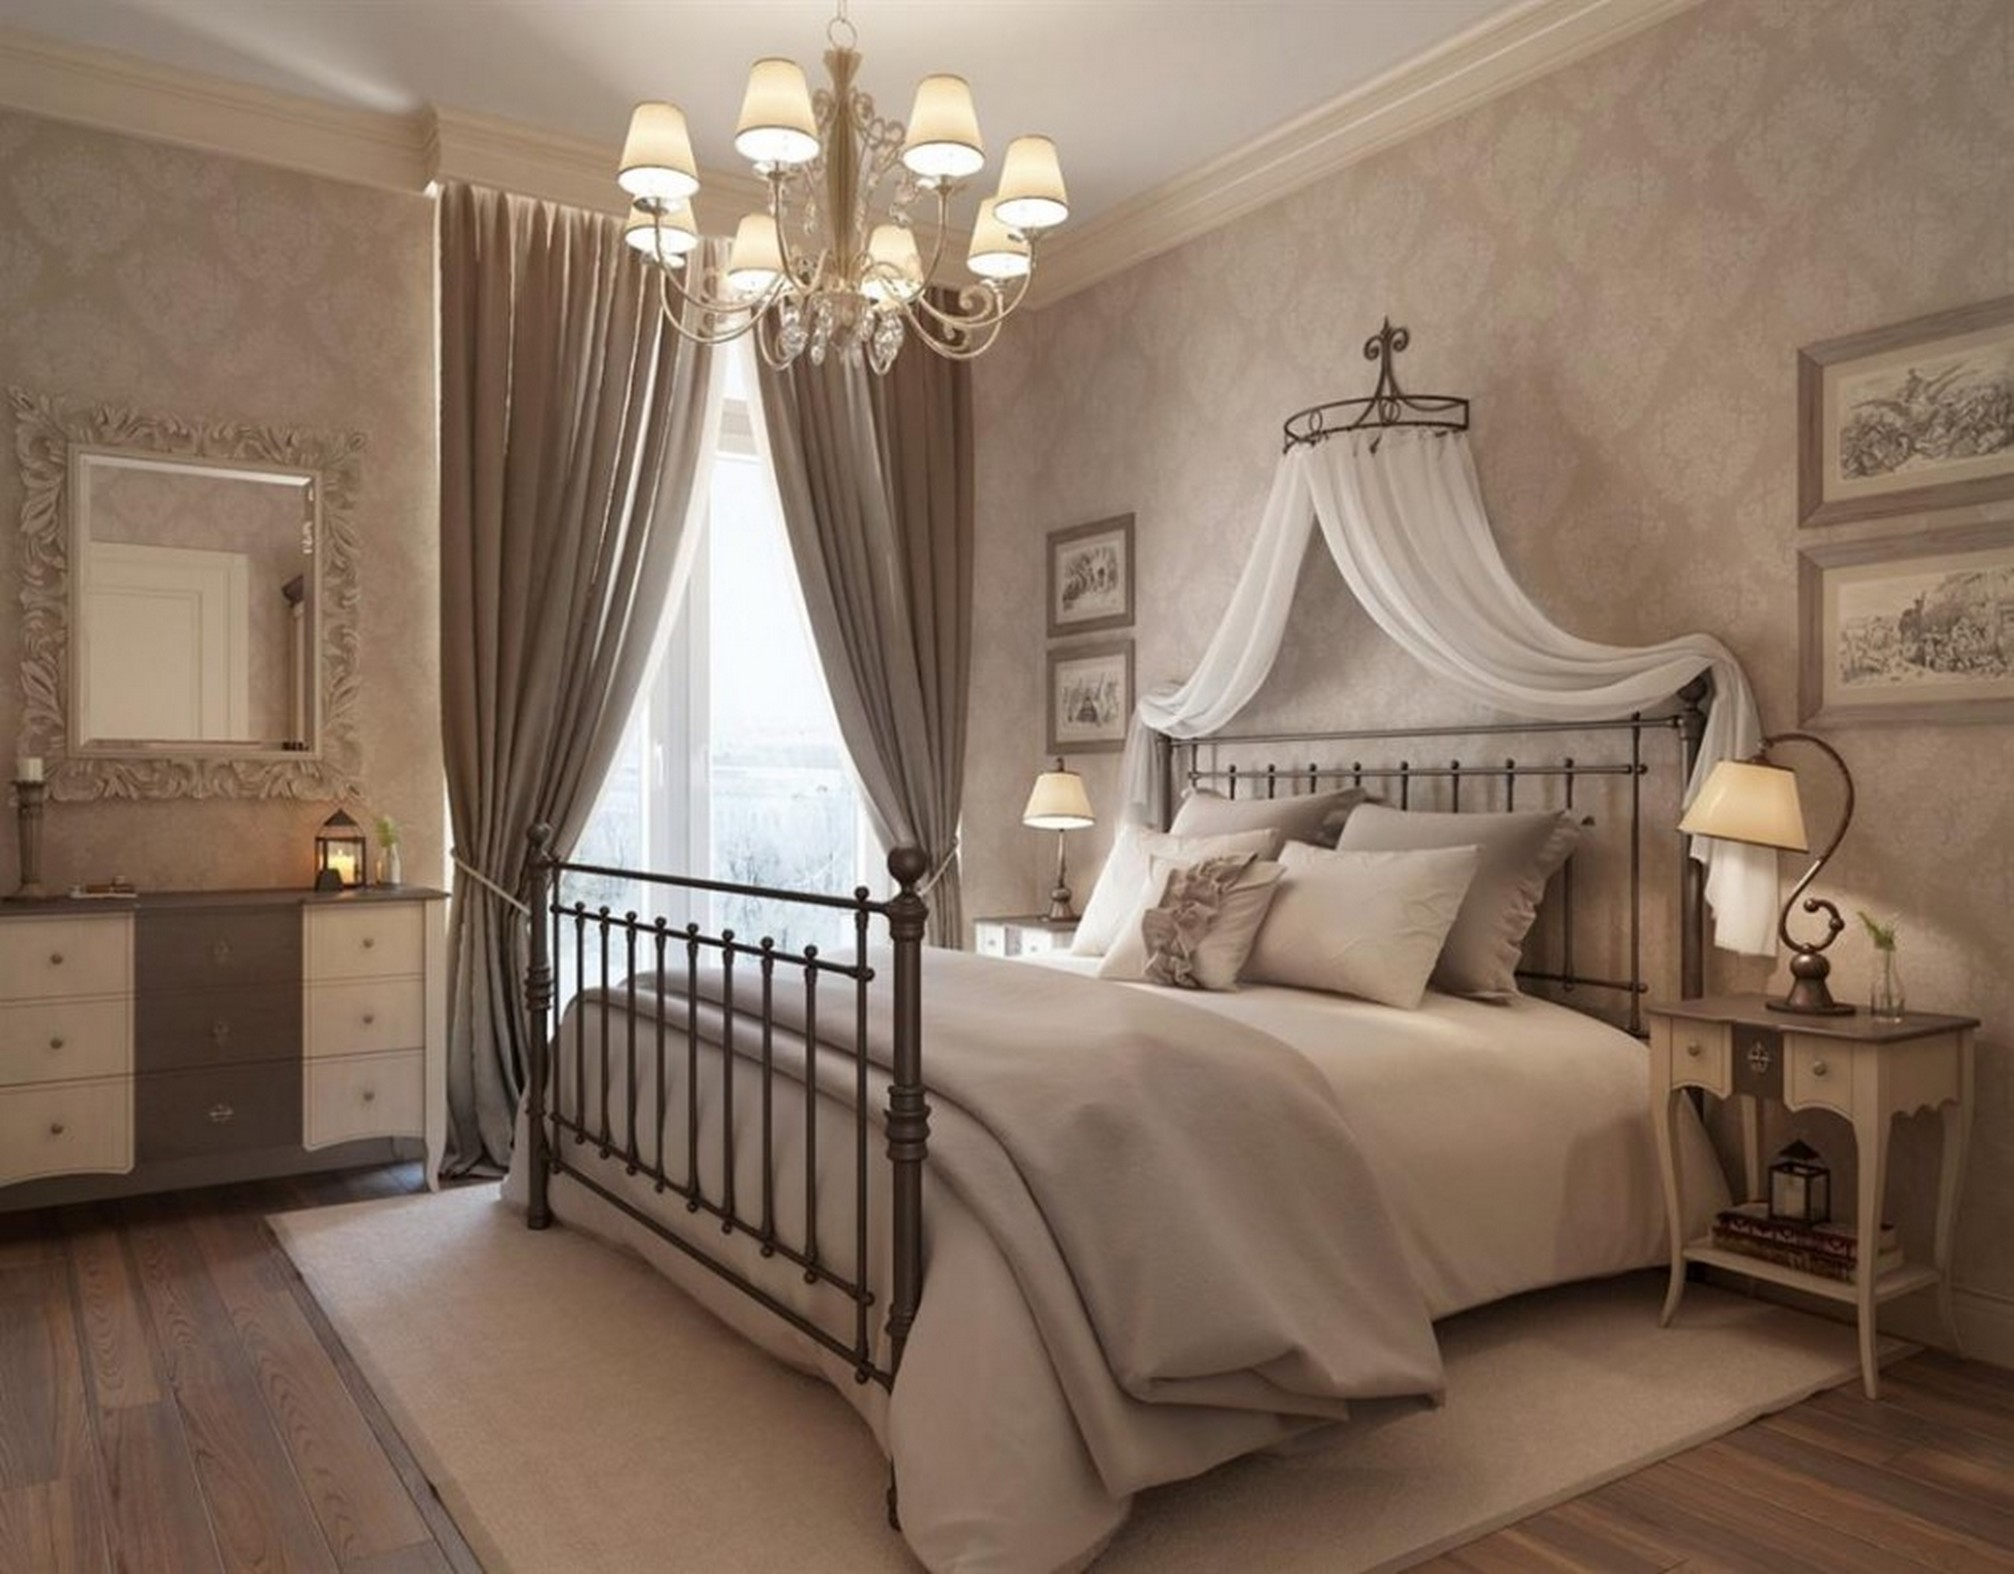 amazing-bedroom-brown-curtain-bedroom-for-luxury-bedroom-design-using-metal-photo-of-new-at-property-2017-luxury-bedroom-designs-brown